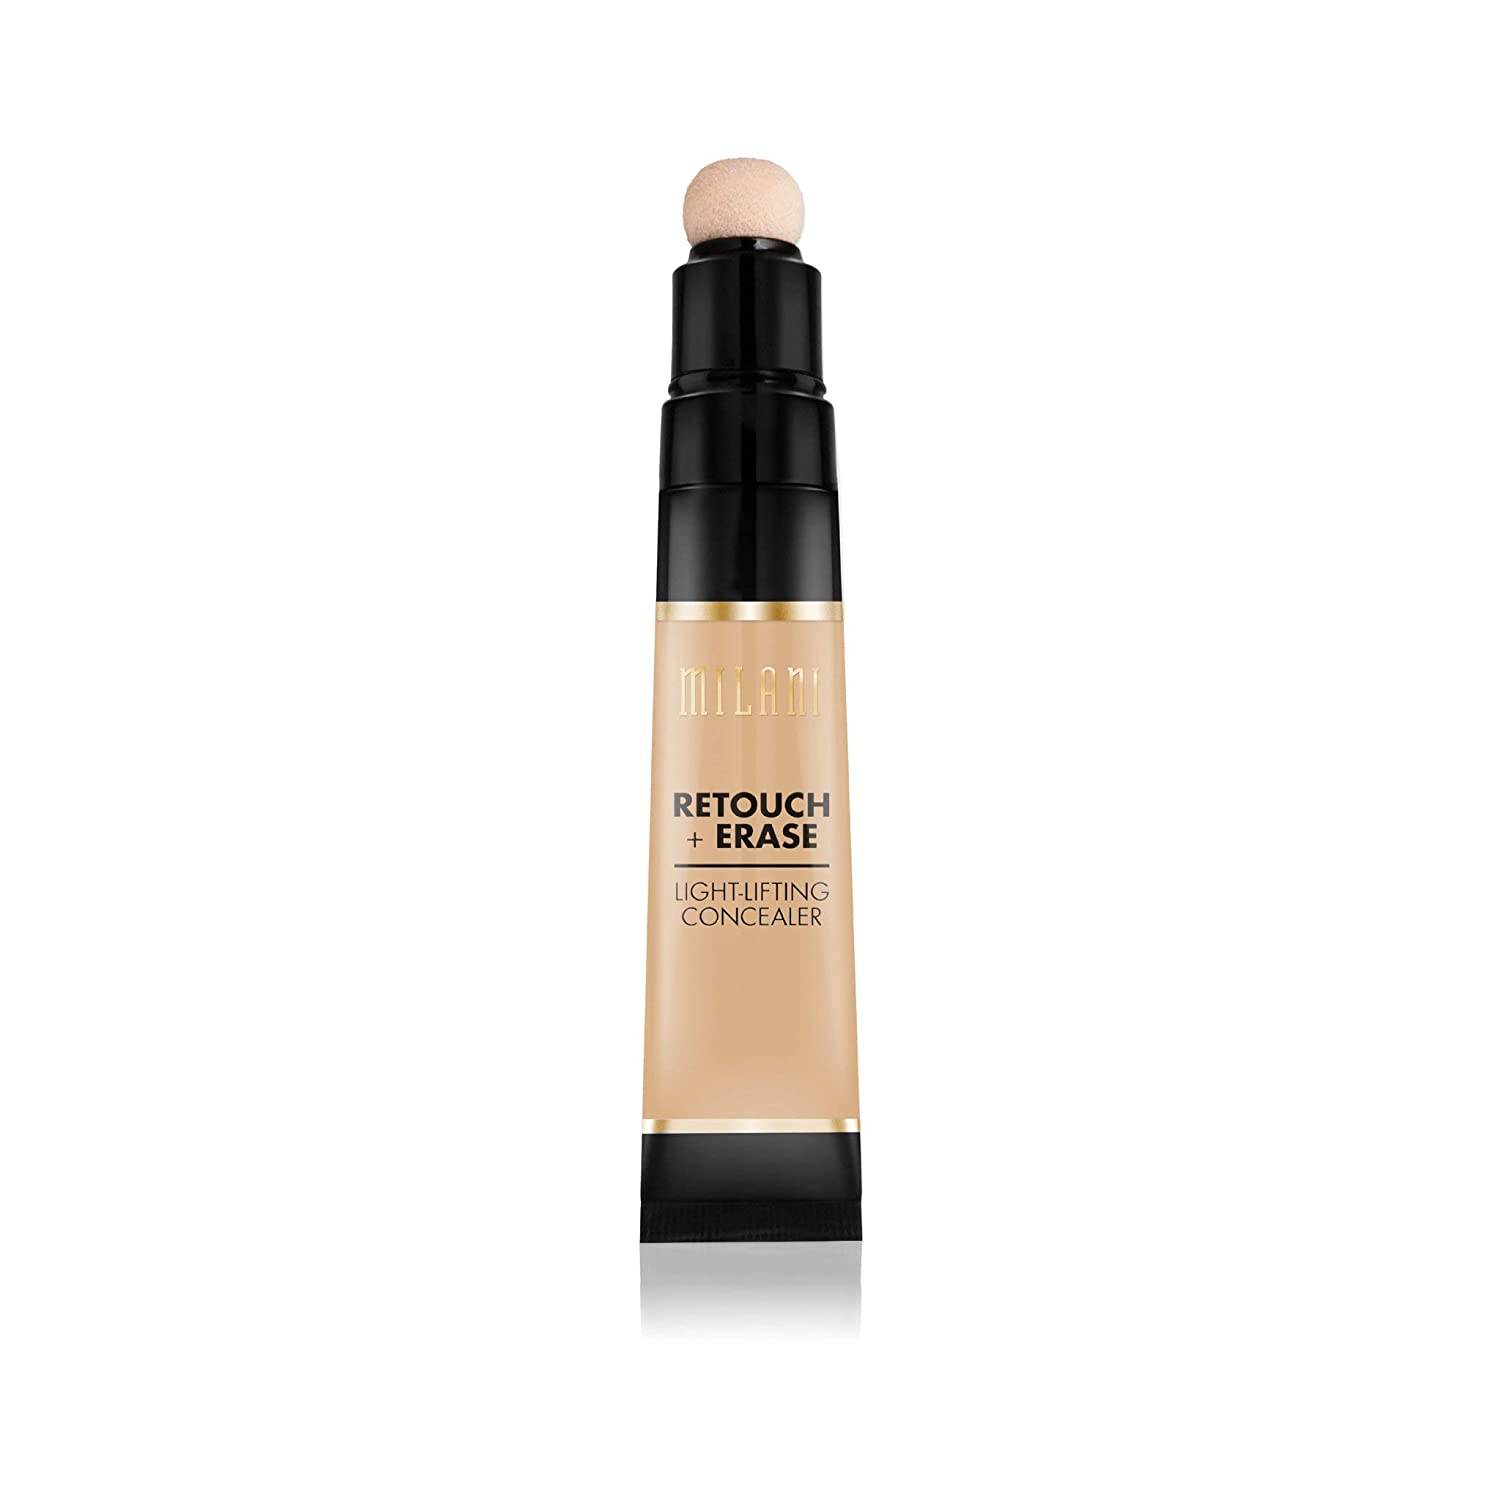 Milani Retouch and Erase Light Lifting Concealer